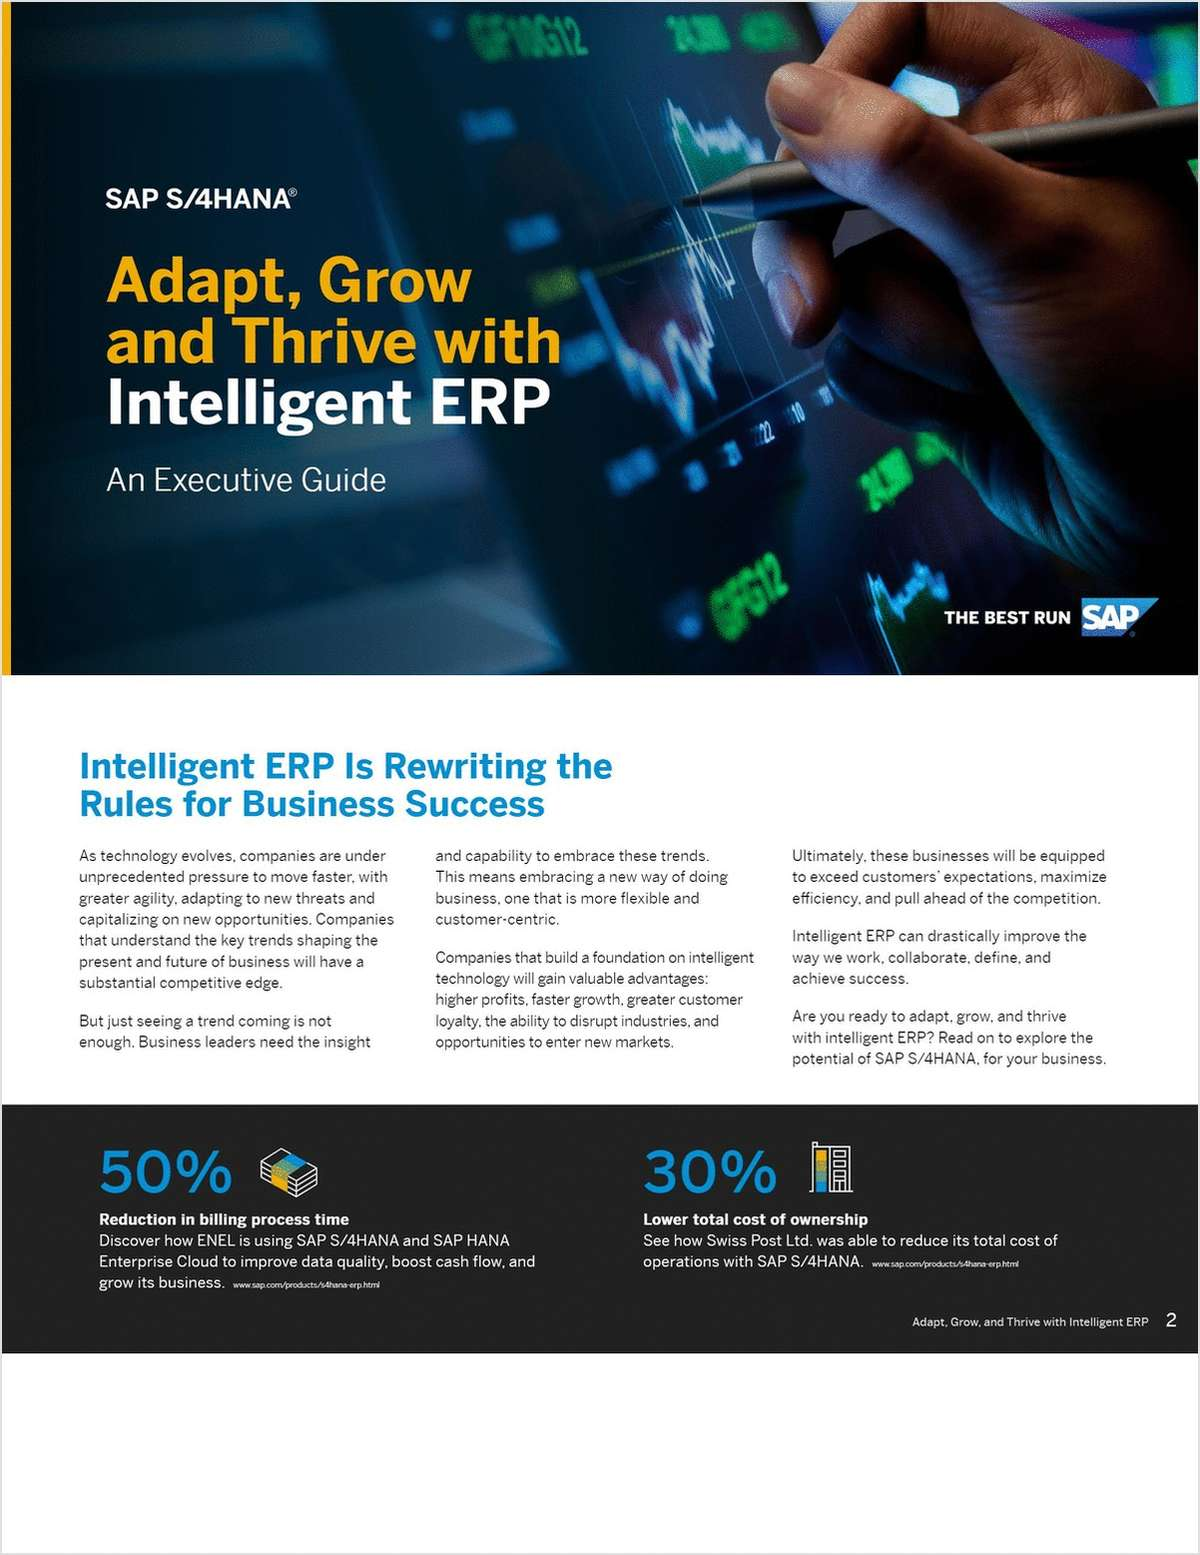 Adapt, Grow and Thrive with Intelligent ERP